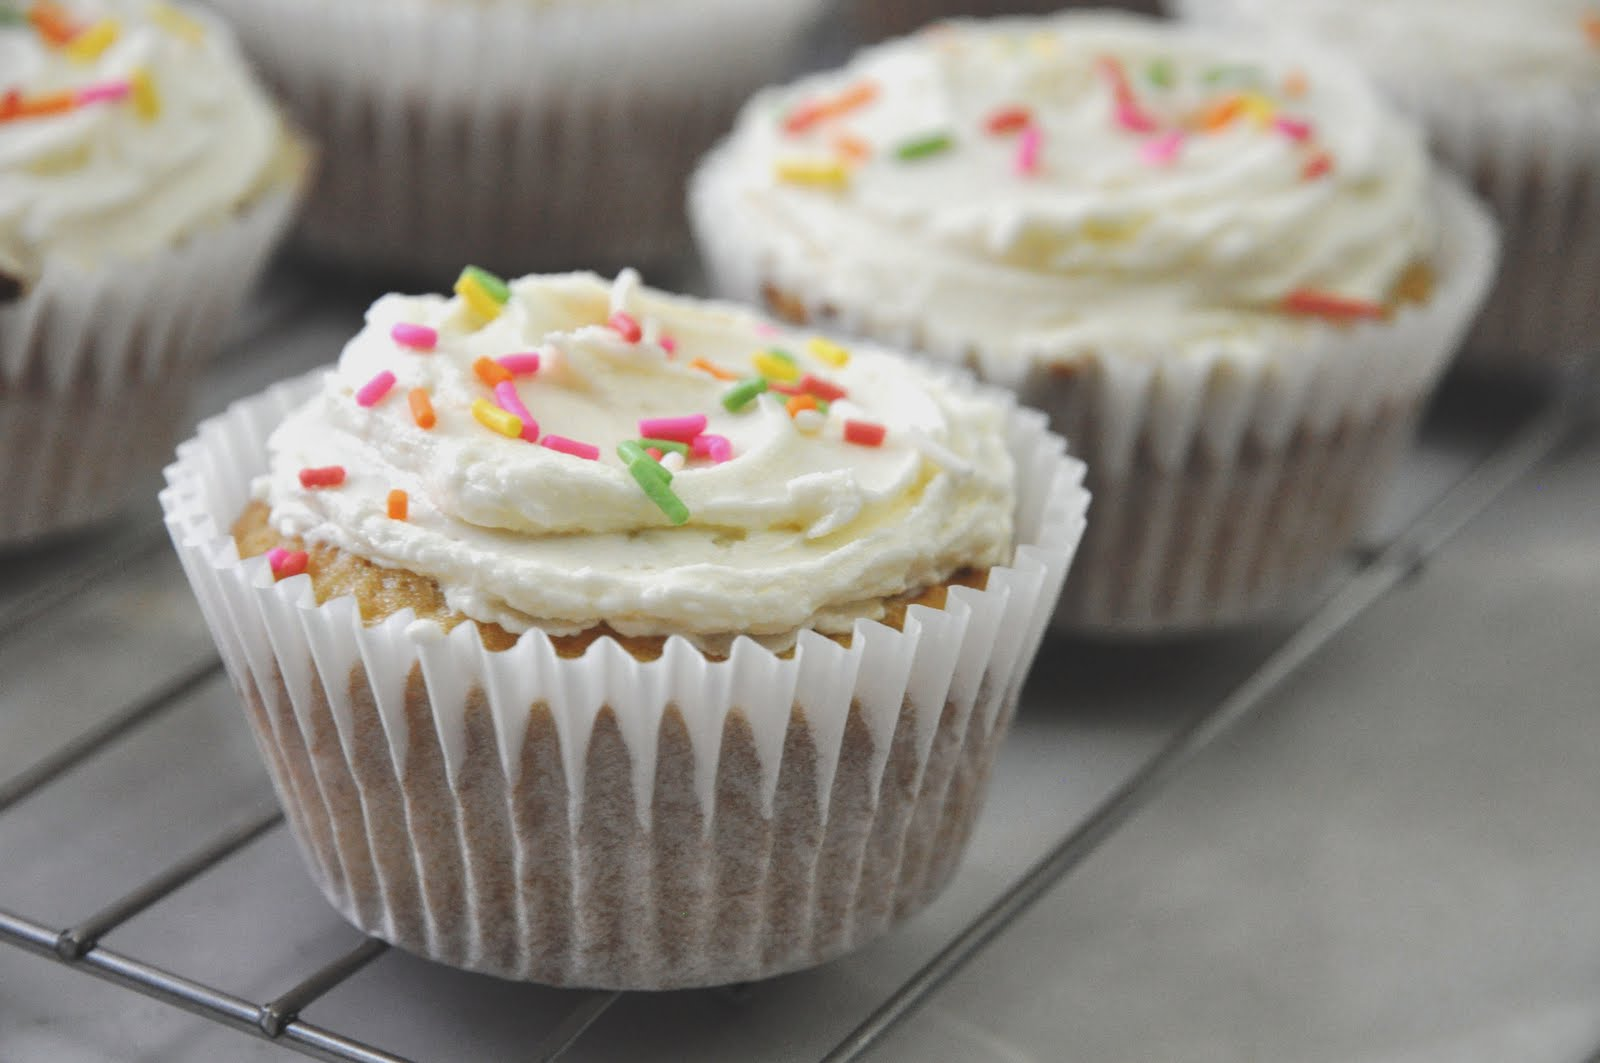 above) Vanilla Cupcakes with Vanilla Buttercream Frosting